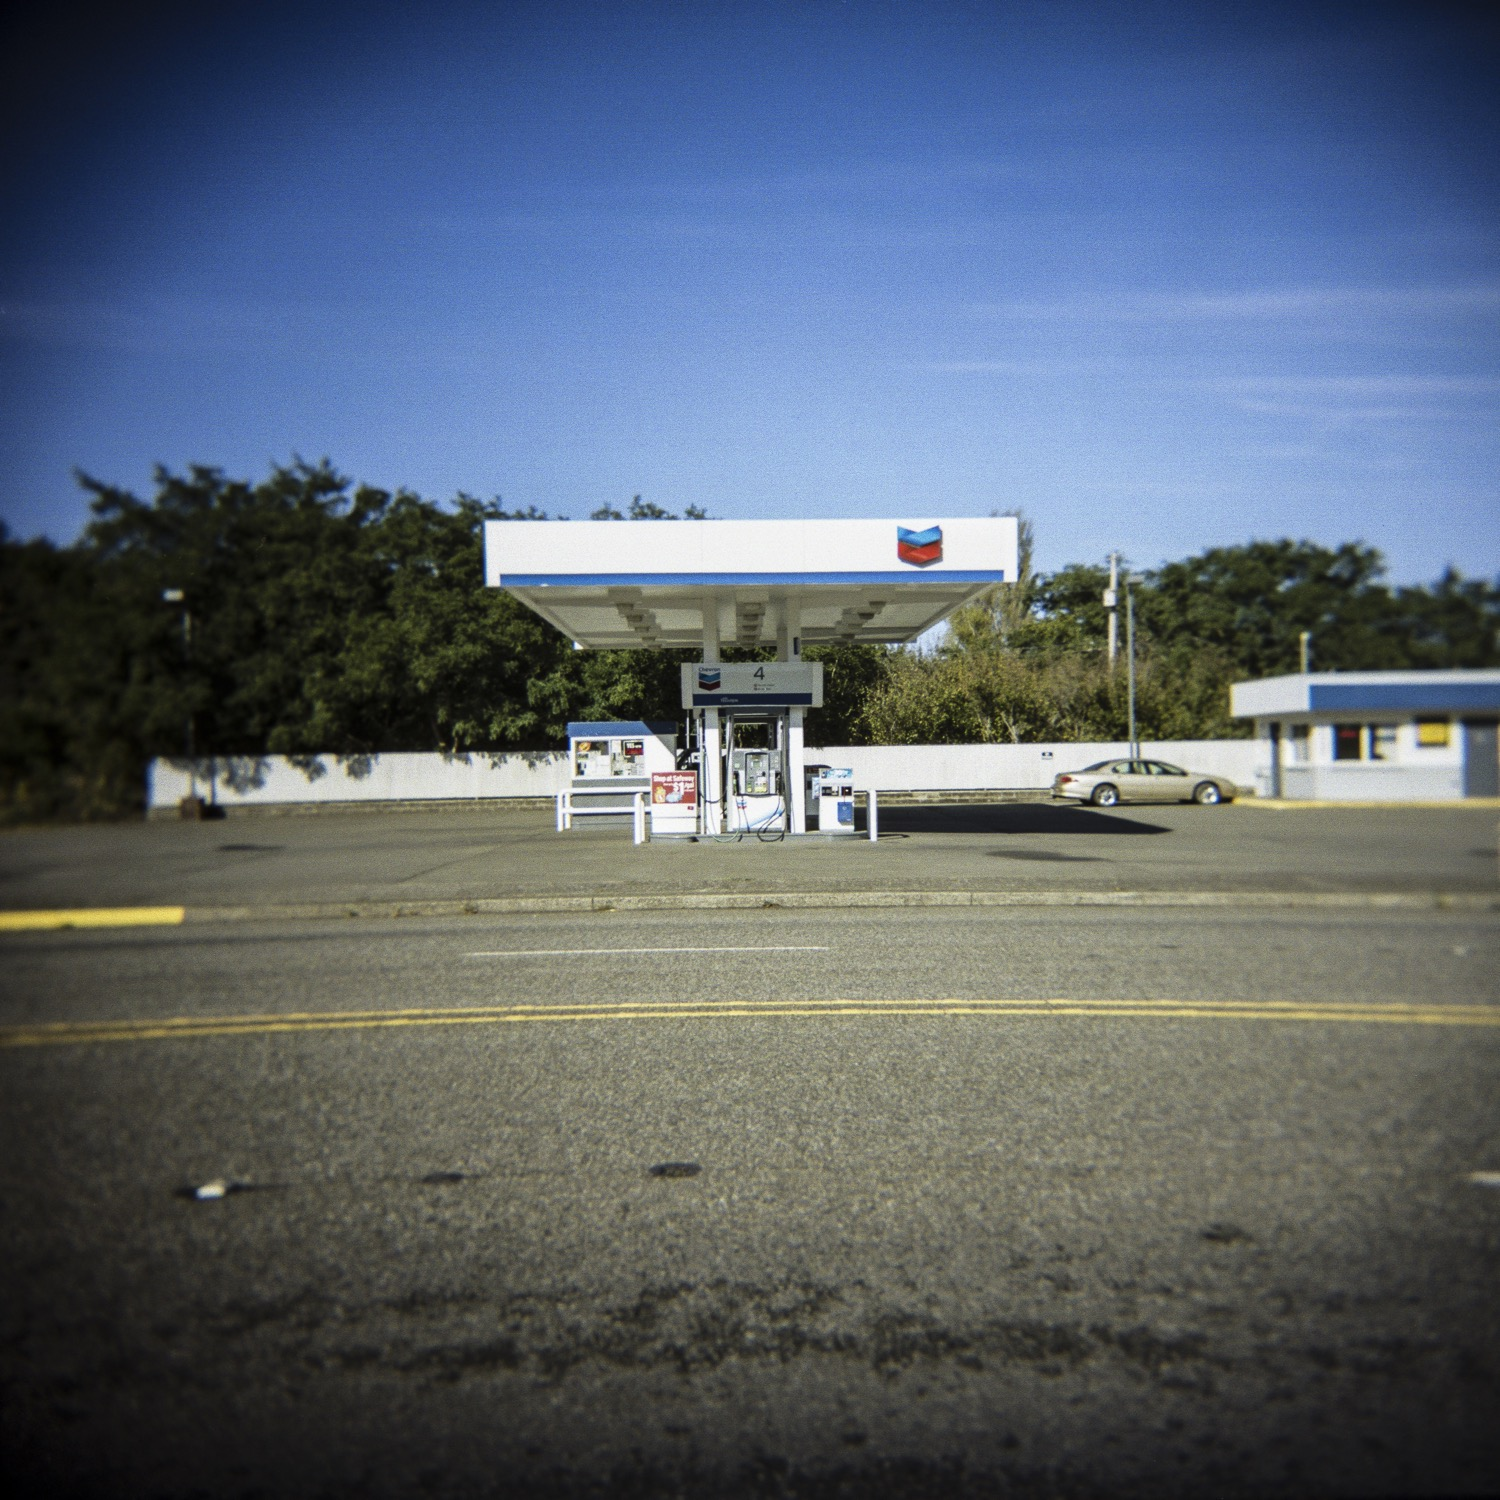 documentary photography shot of Chevron gas station, Port Orford, OR